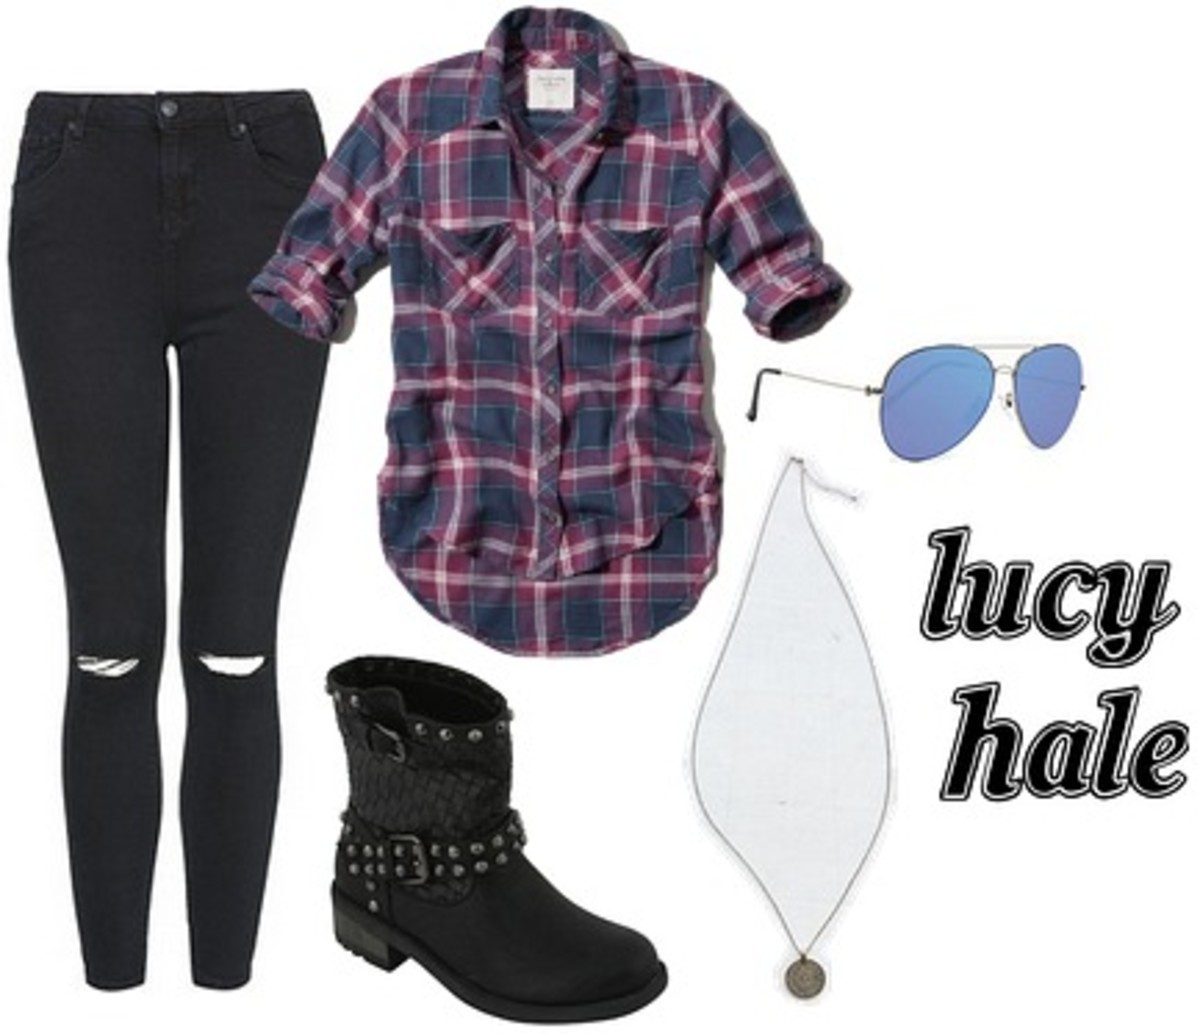 black-skinny-jeans-purple-royal-plaid-shirt-necklace-black-shoe-booties-sun-lucyhale-howtowear-fashion-spring-summer-style-outfit-weekend.jpg